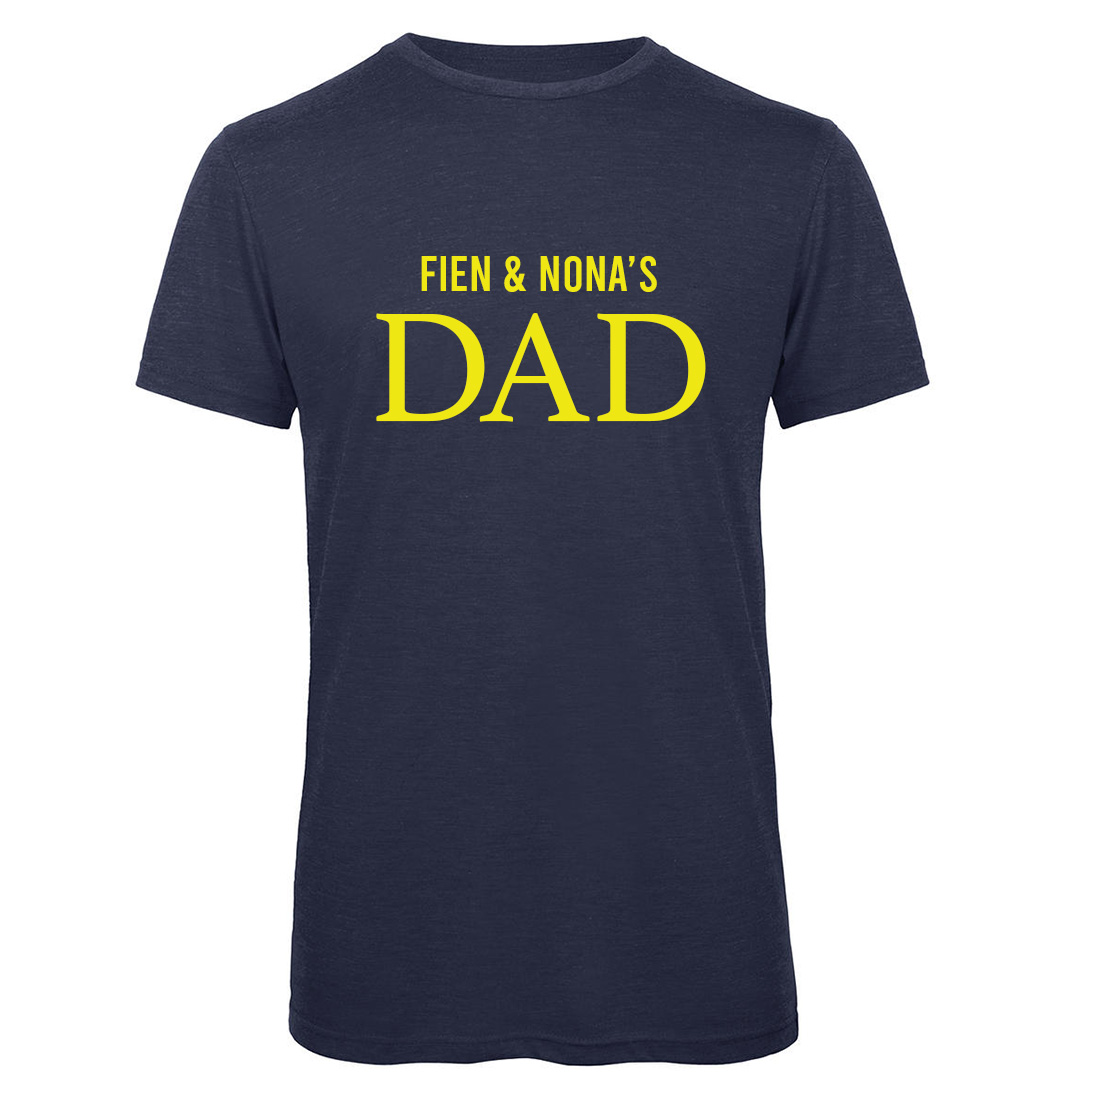 Dad T-shirt met namen - Navy